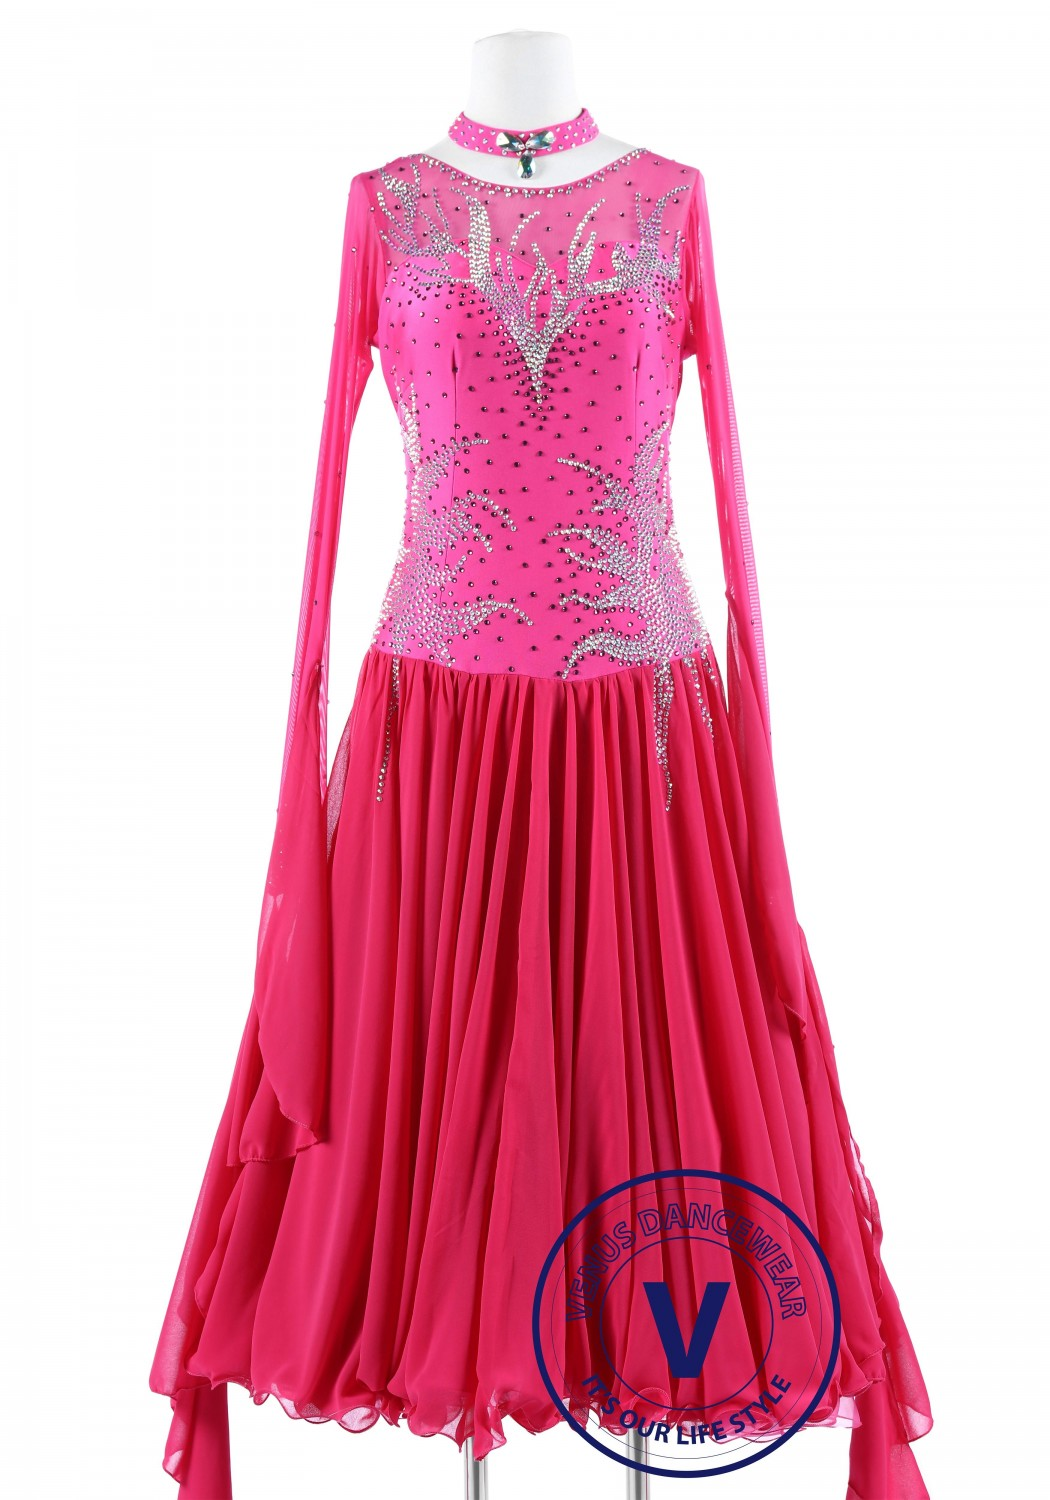 Pink Ice Standard Smooth Foxtrot Waltz Quickstep Dress